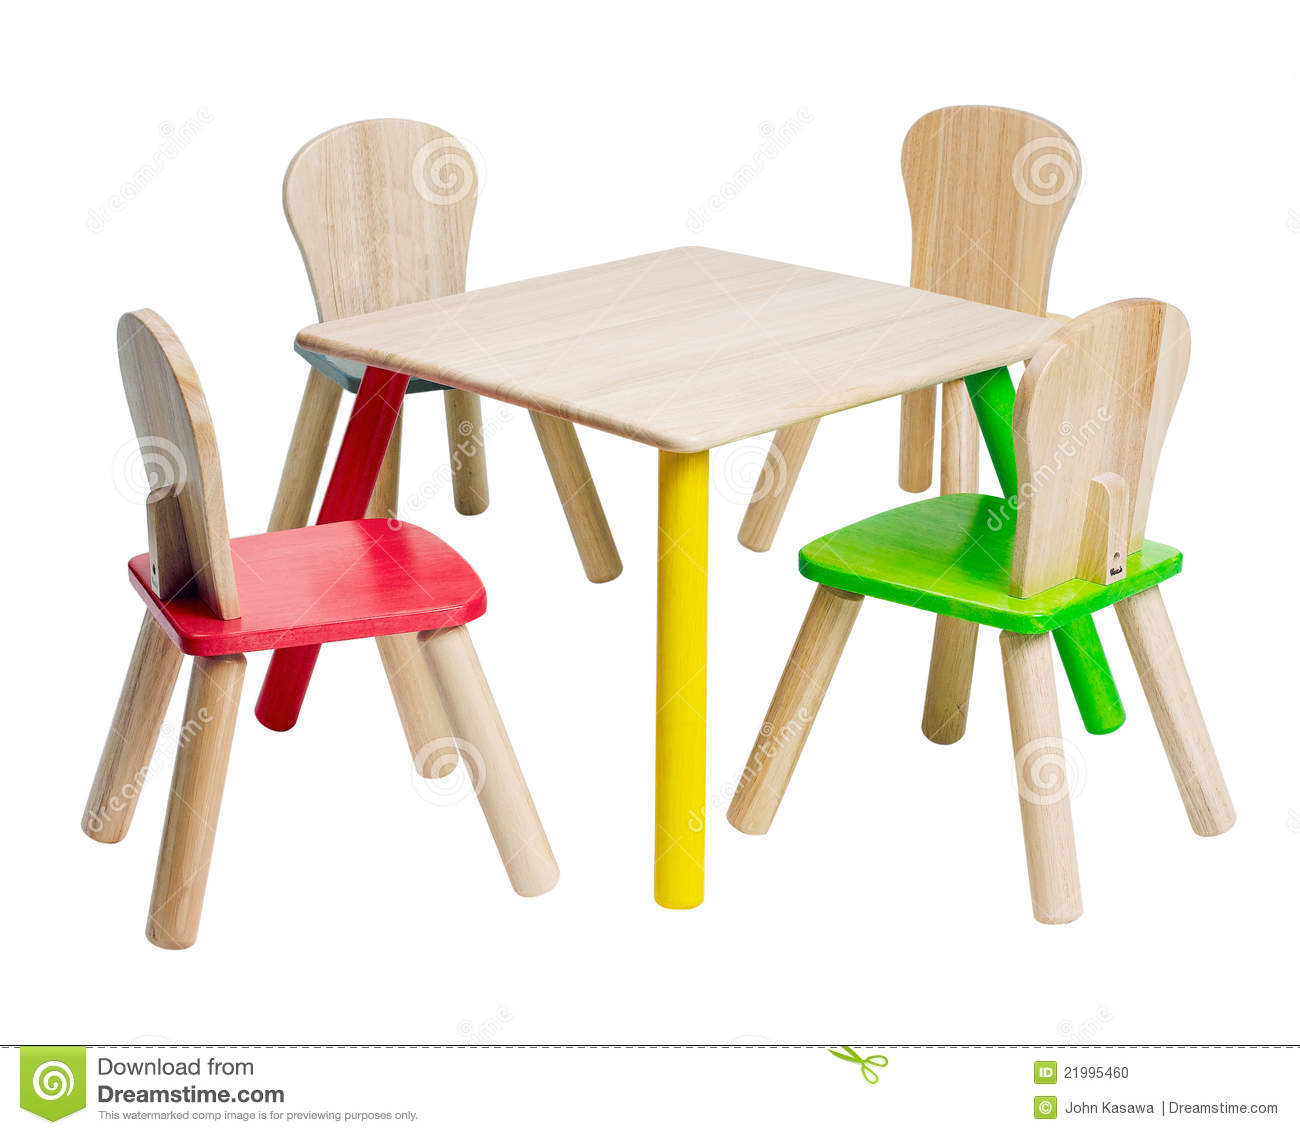 Royalty Free Stock Photo  Download Wooden Table. Wooden Table And Chairs Toys For Kid Stock Photo   Image  21995460